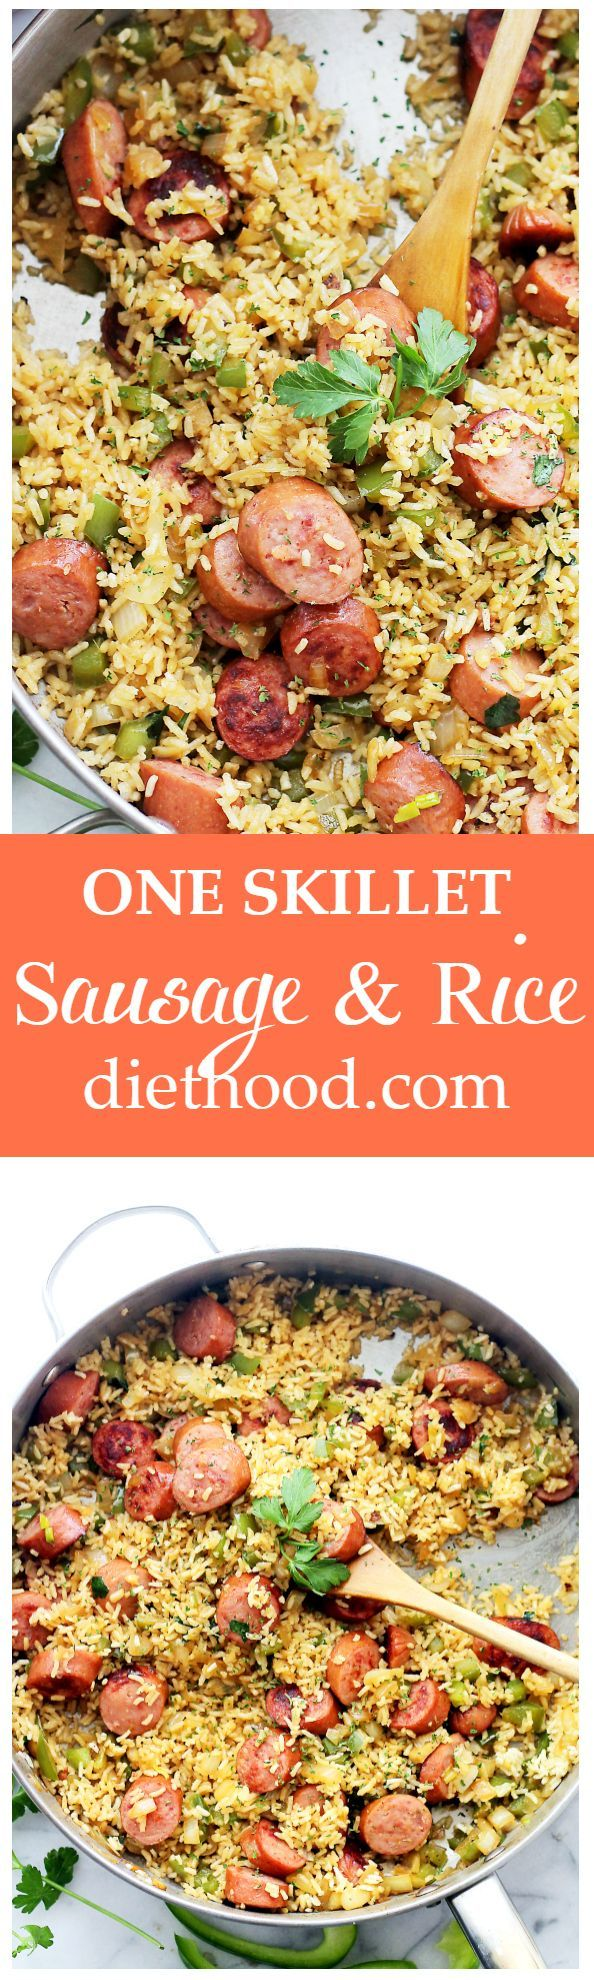 One-Skillet Sausage and Rice - Easy, 30-minute, one-skillet meal with smoked turkey sausage, fluffy white rice and flavorful veggies. #MinuteMeals AD Get the recipe on diethood.com